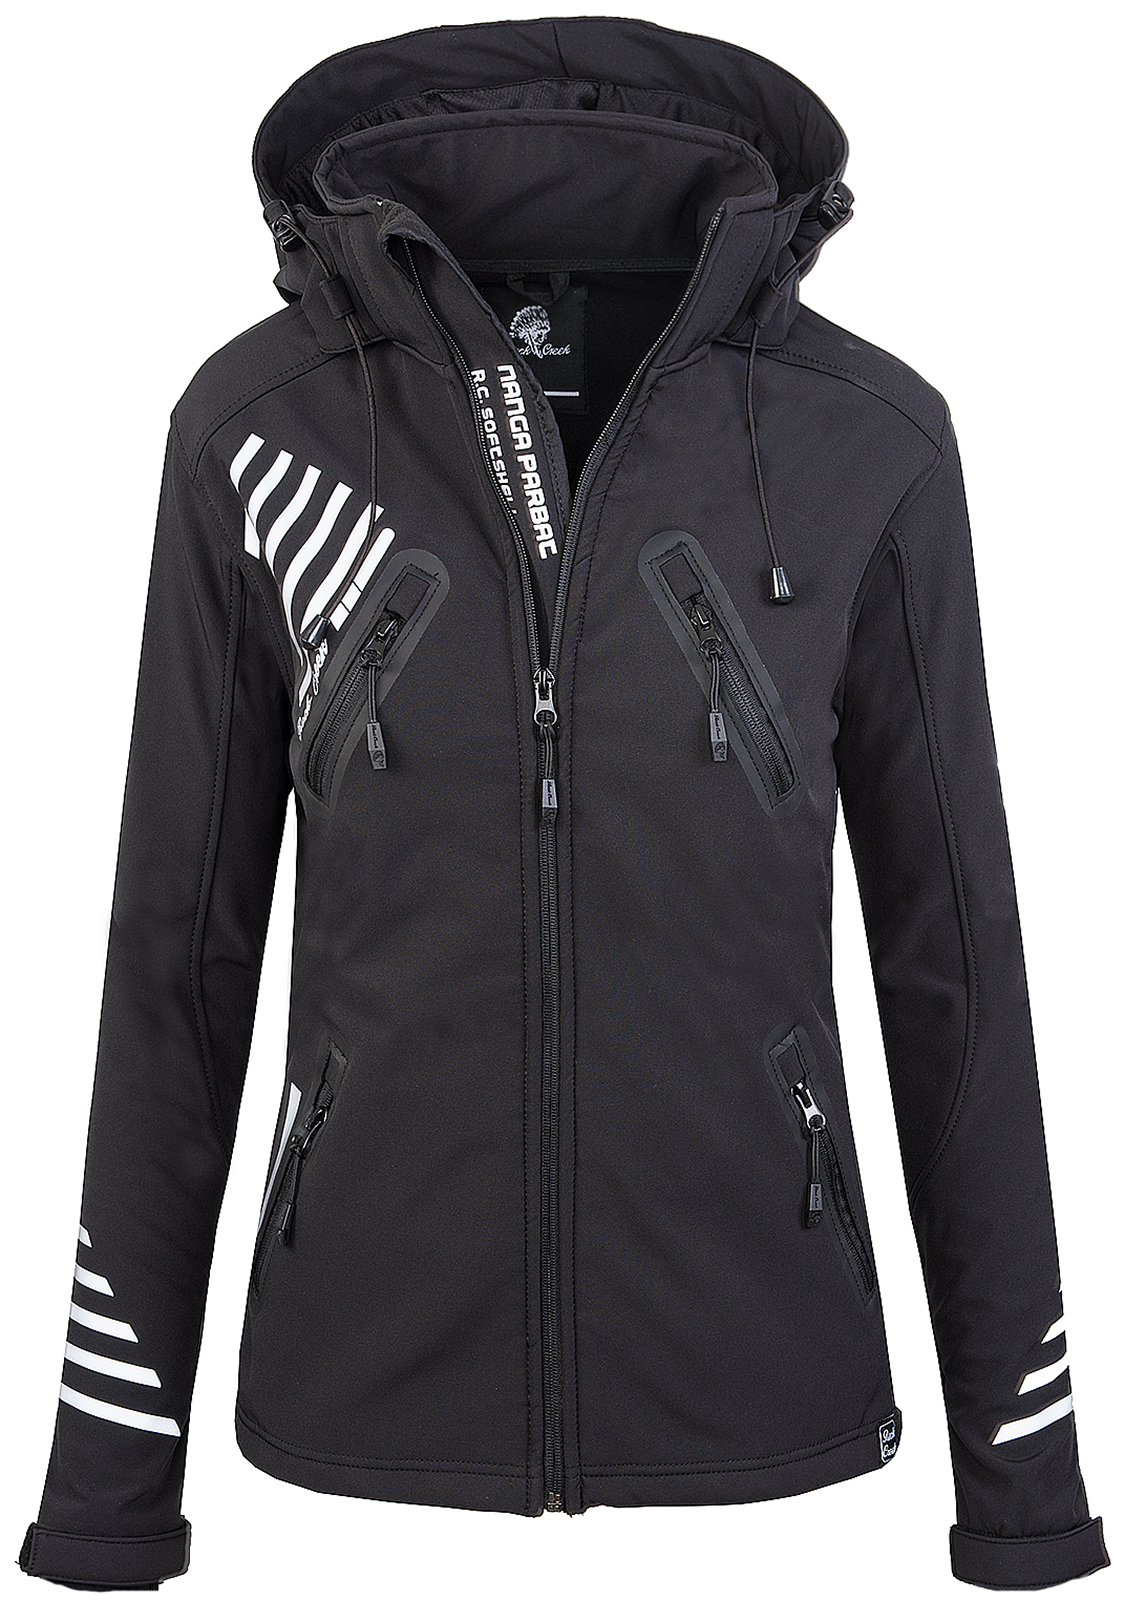 rock creek damen softshell jacke outdoorjacke windbreaker bergangs jacke d 390 ebay. Black Bedroom Furniture Sets. Home Design Ideas